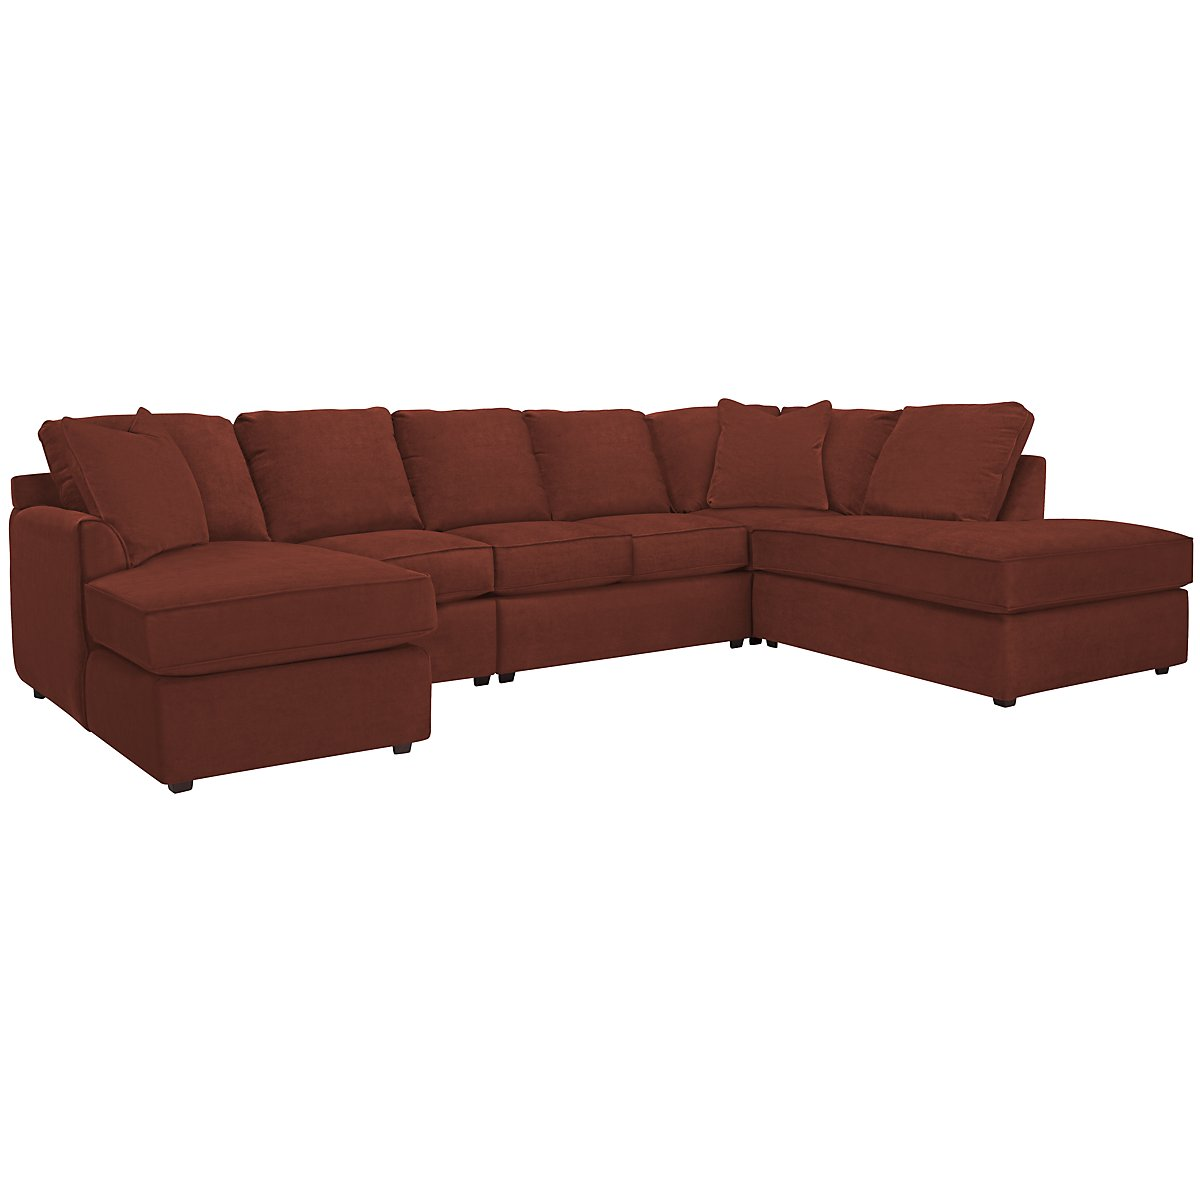 Express3 Red Microfiber Large Right Bumper Sectional